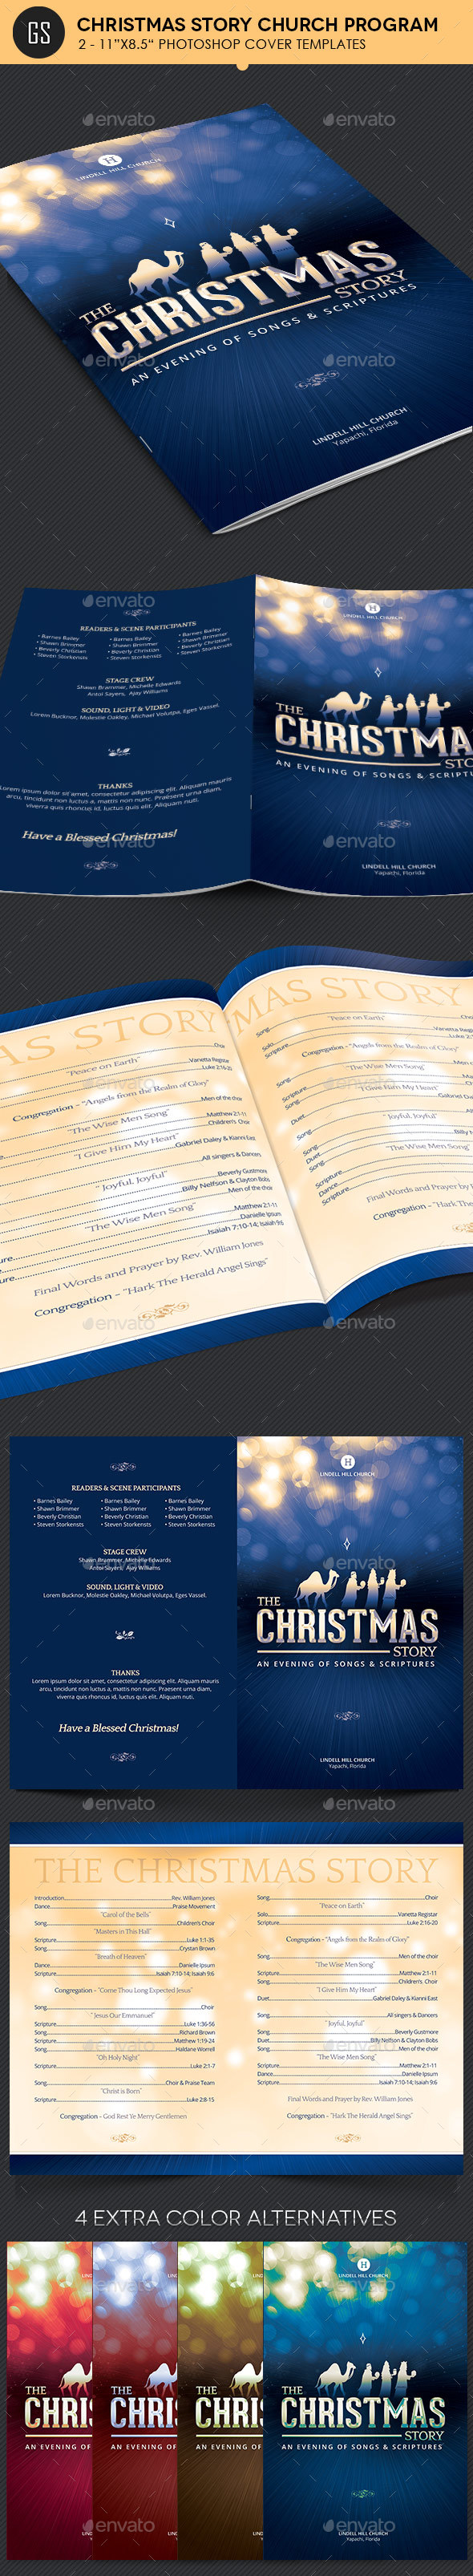 Christmas Story Church Program Template - Informational Brochures